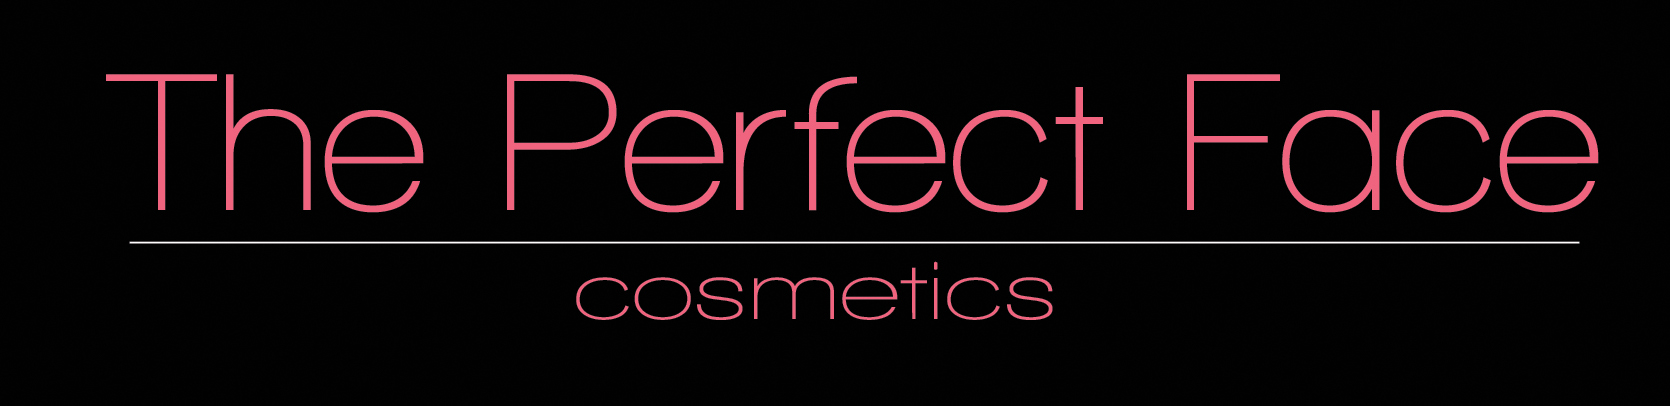 The Perfect Face cosmetics logo